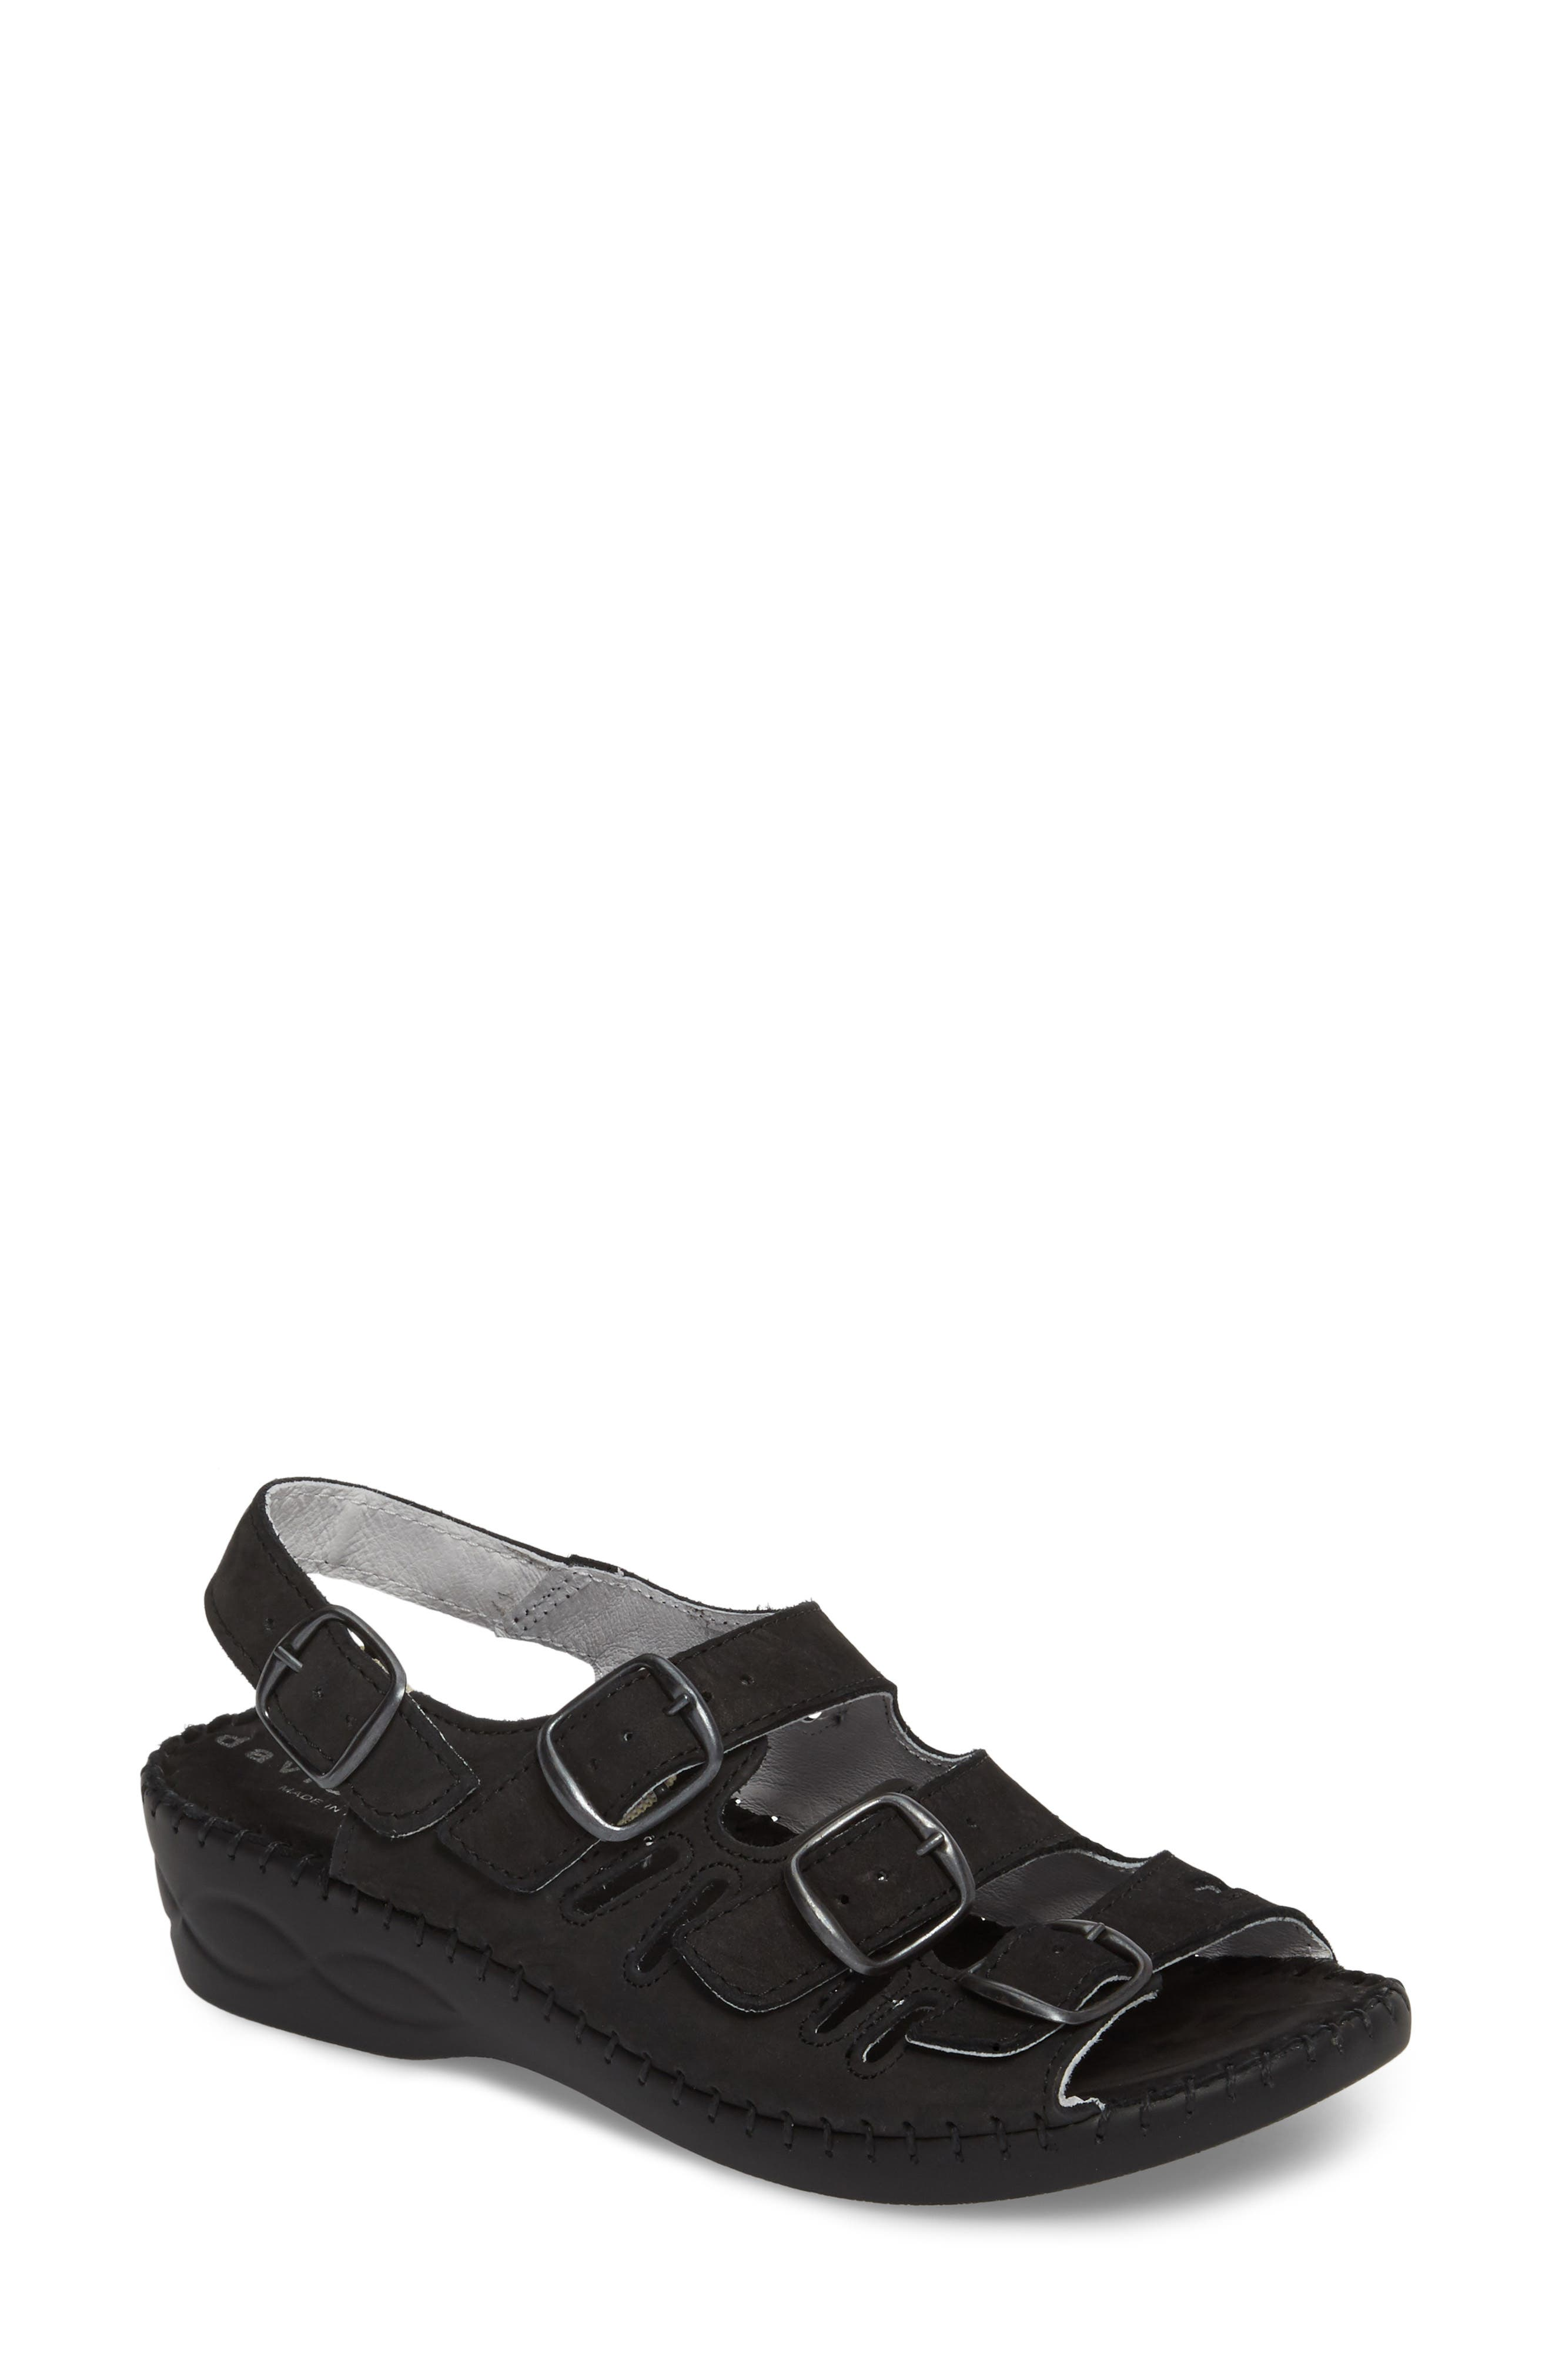 DAVID TATE Luna Slingback Wedge Sandal, Main, color, BLACK NUBUCK